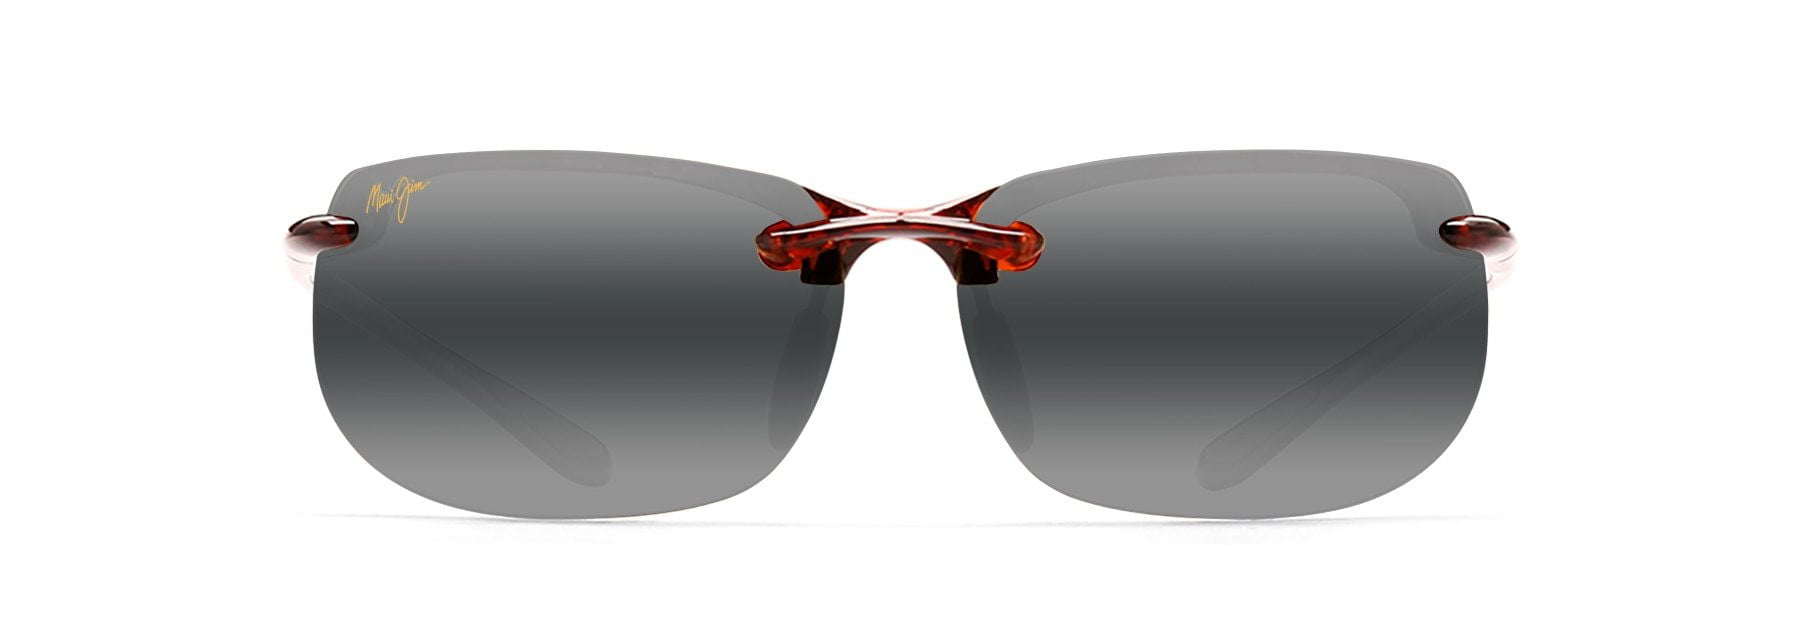 MyMaui Banyans MM412-002 Sunglasses